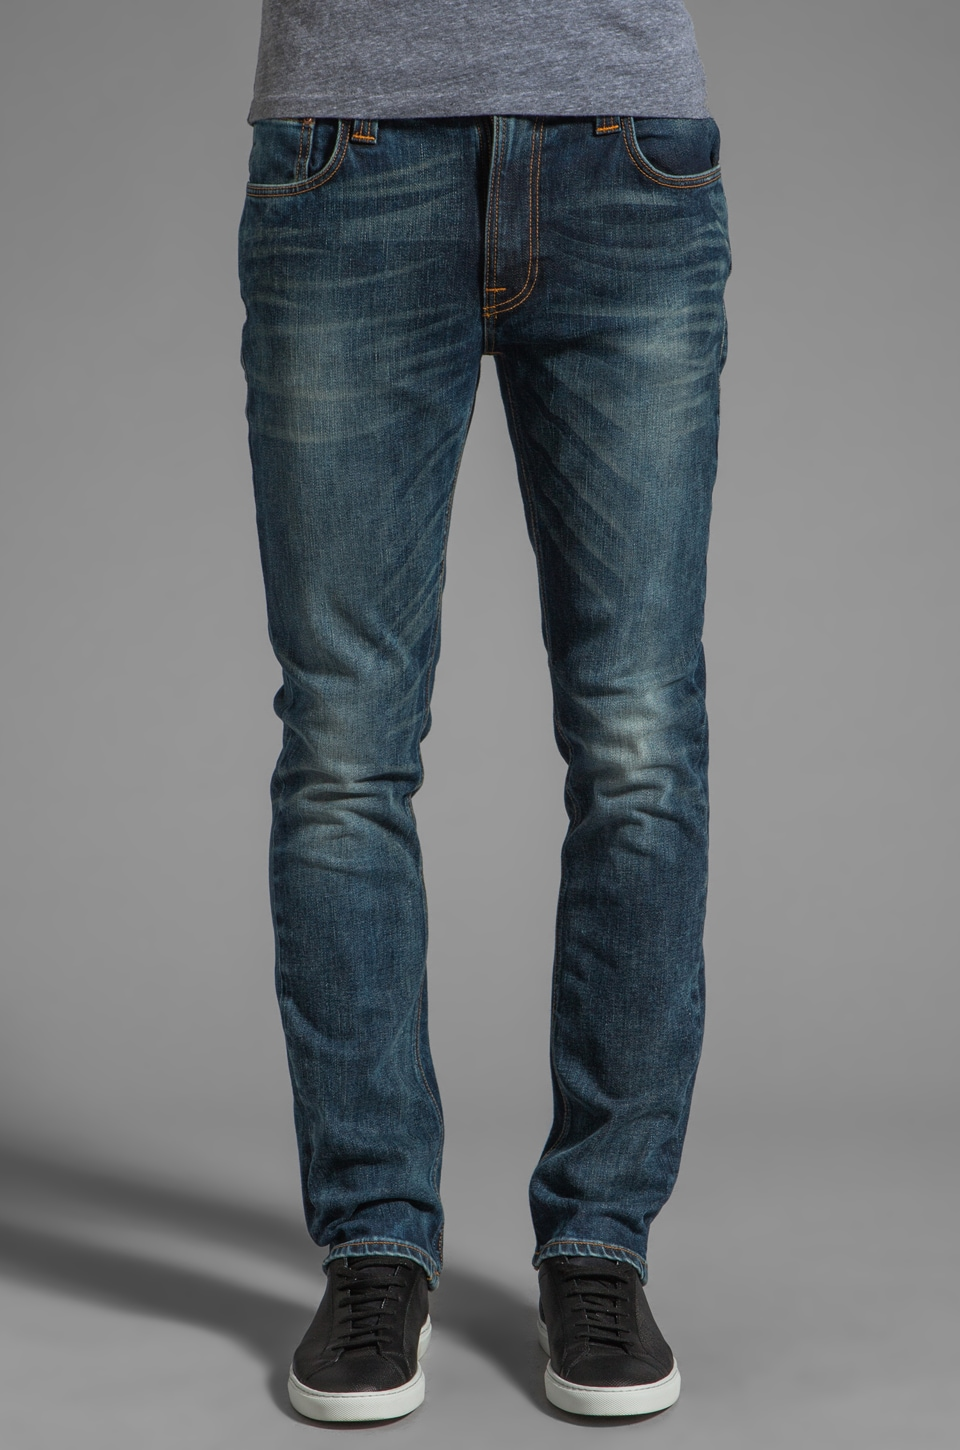 Nudie Jeans Thin Finn in Organic Genuine Love